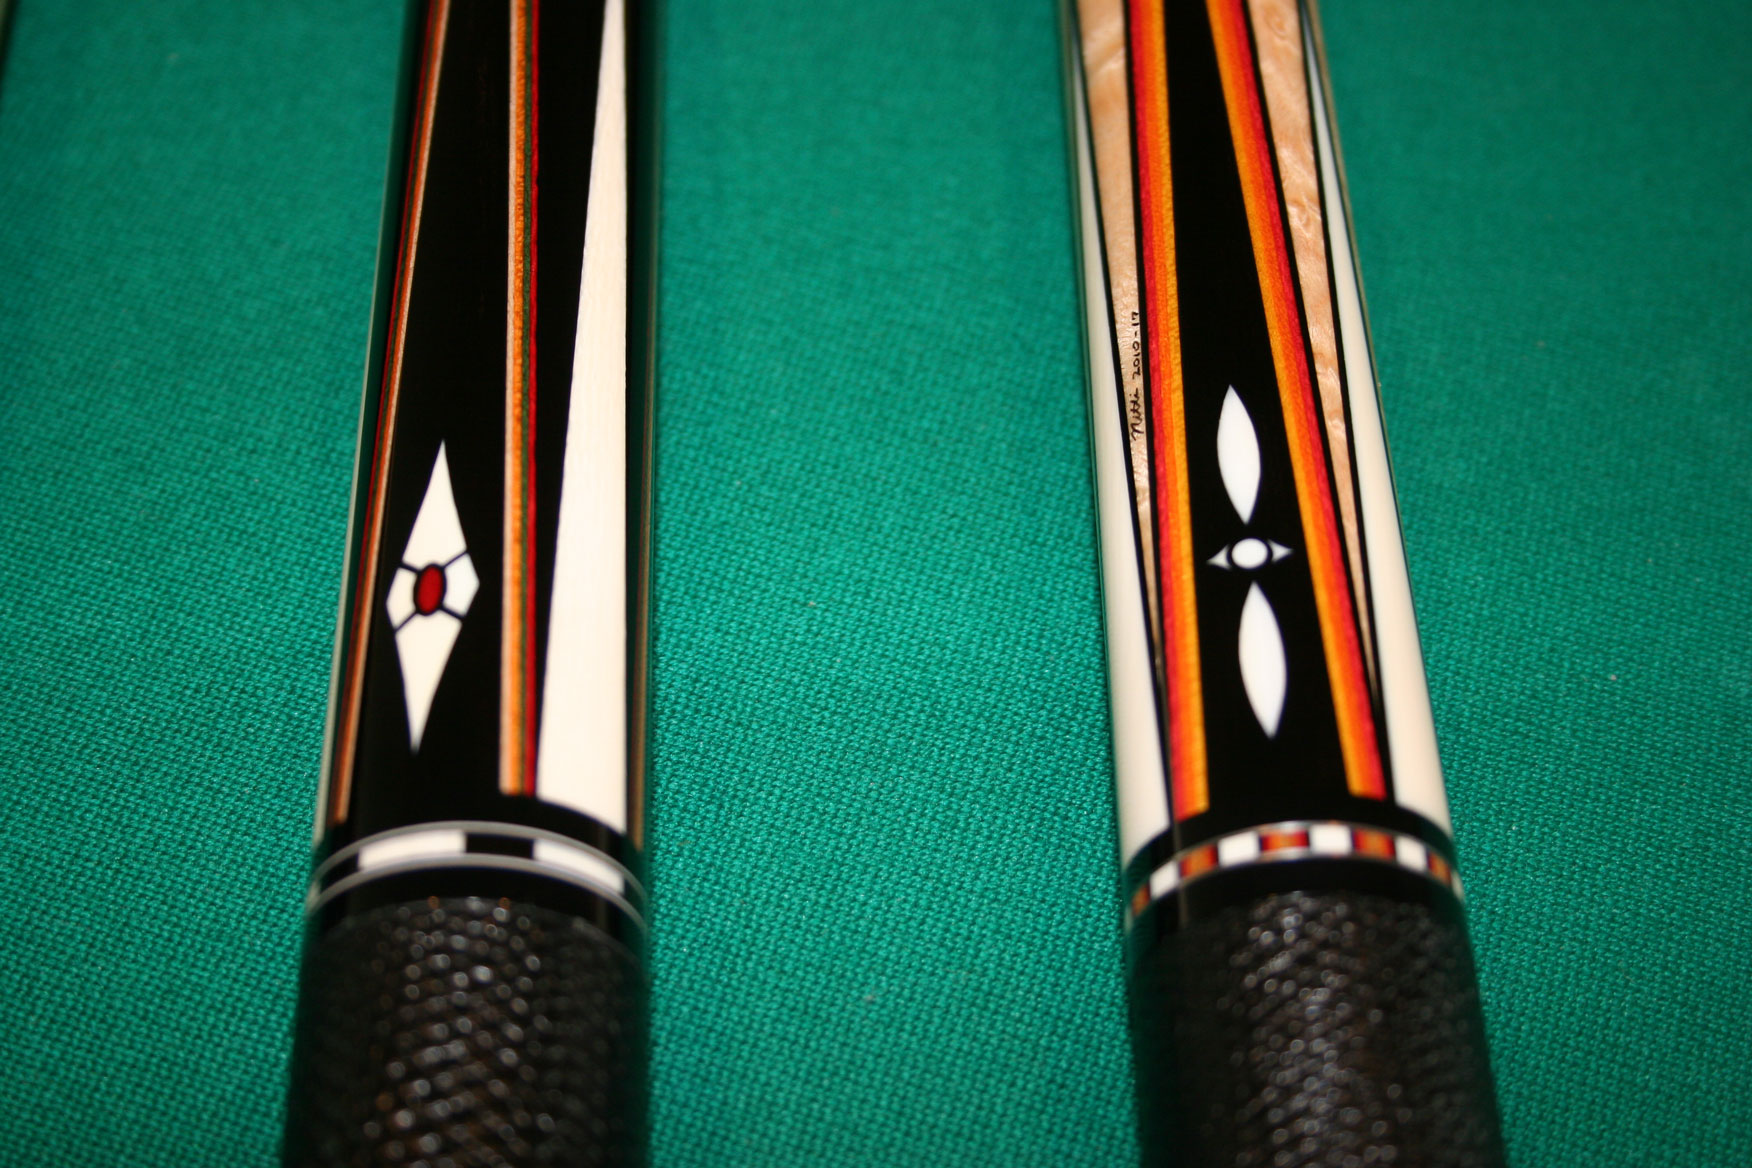 Copy-of-4-13-2010-Group-Cue-Pics-007.jpg